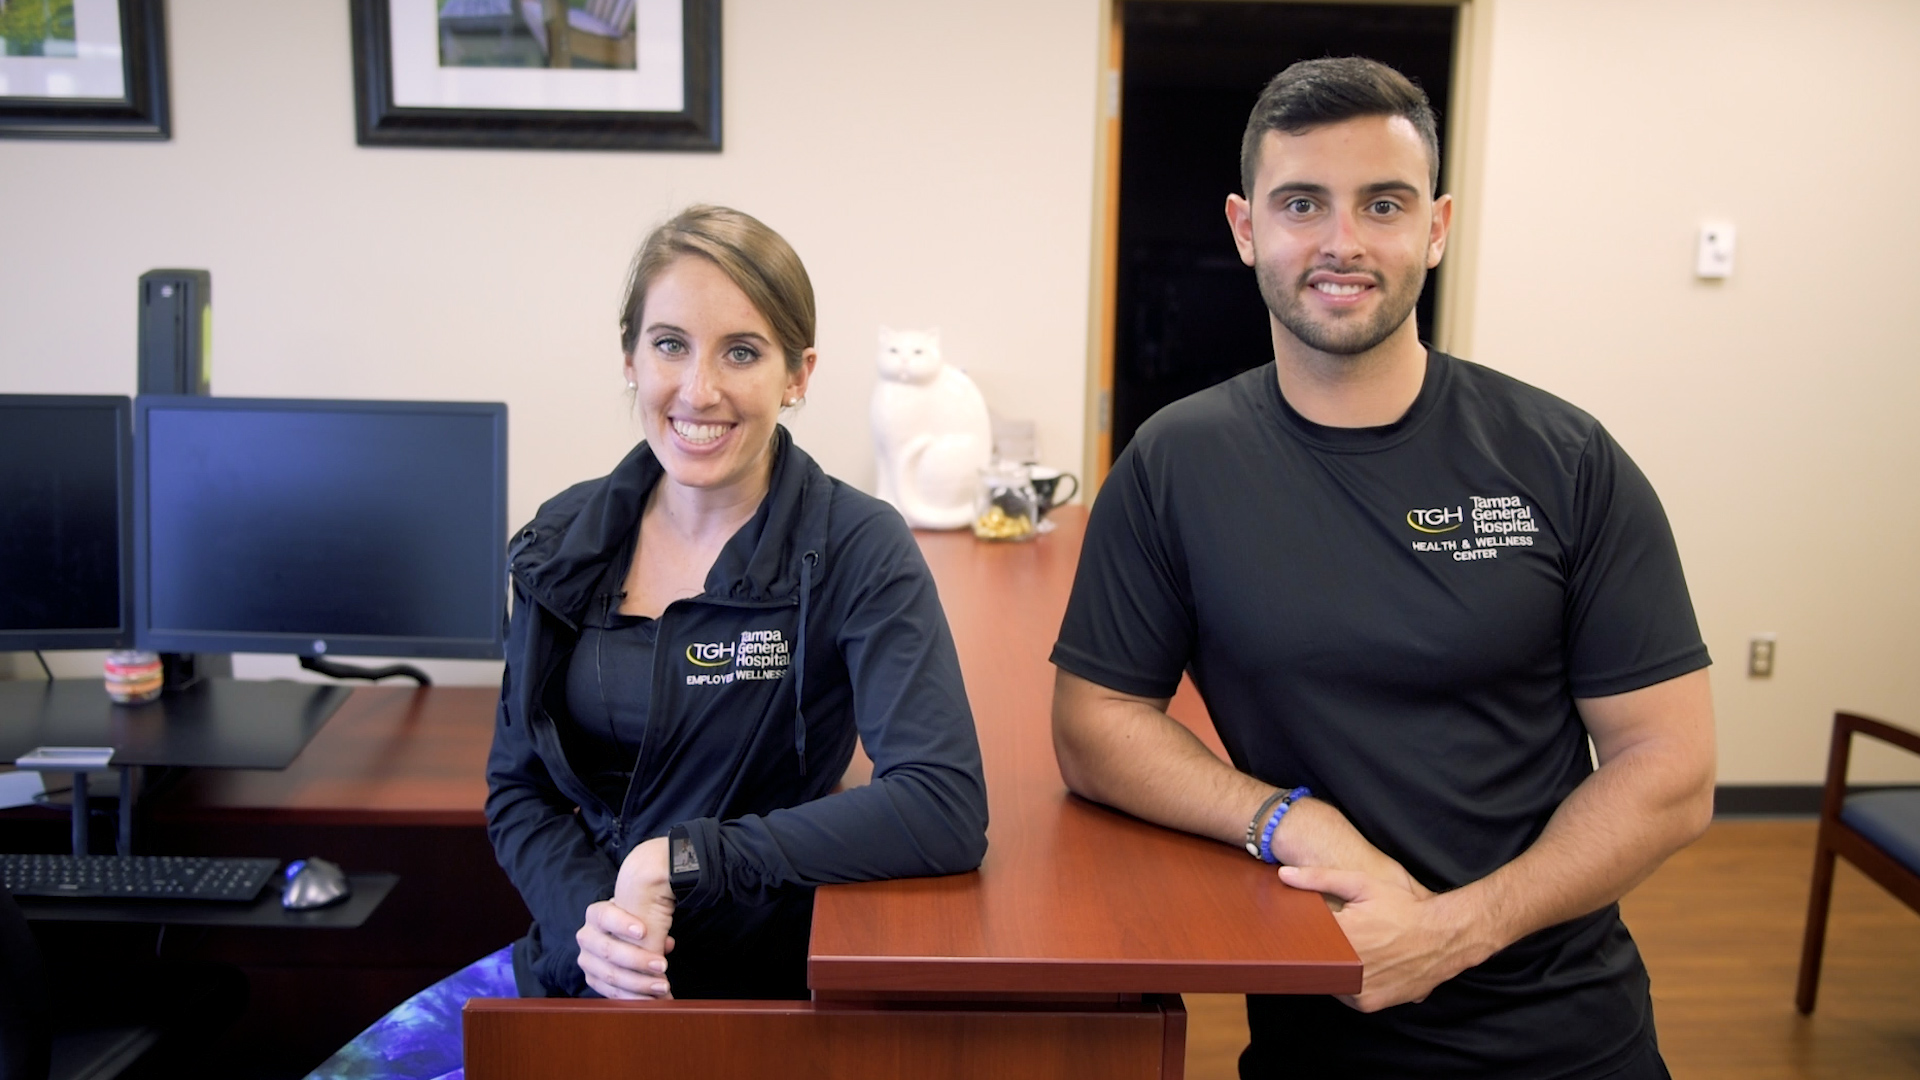 Two Tampa General Hospital wellness physicians